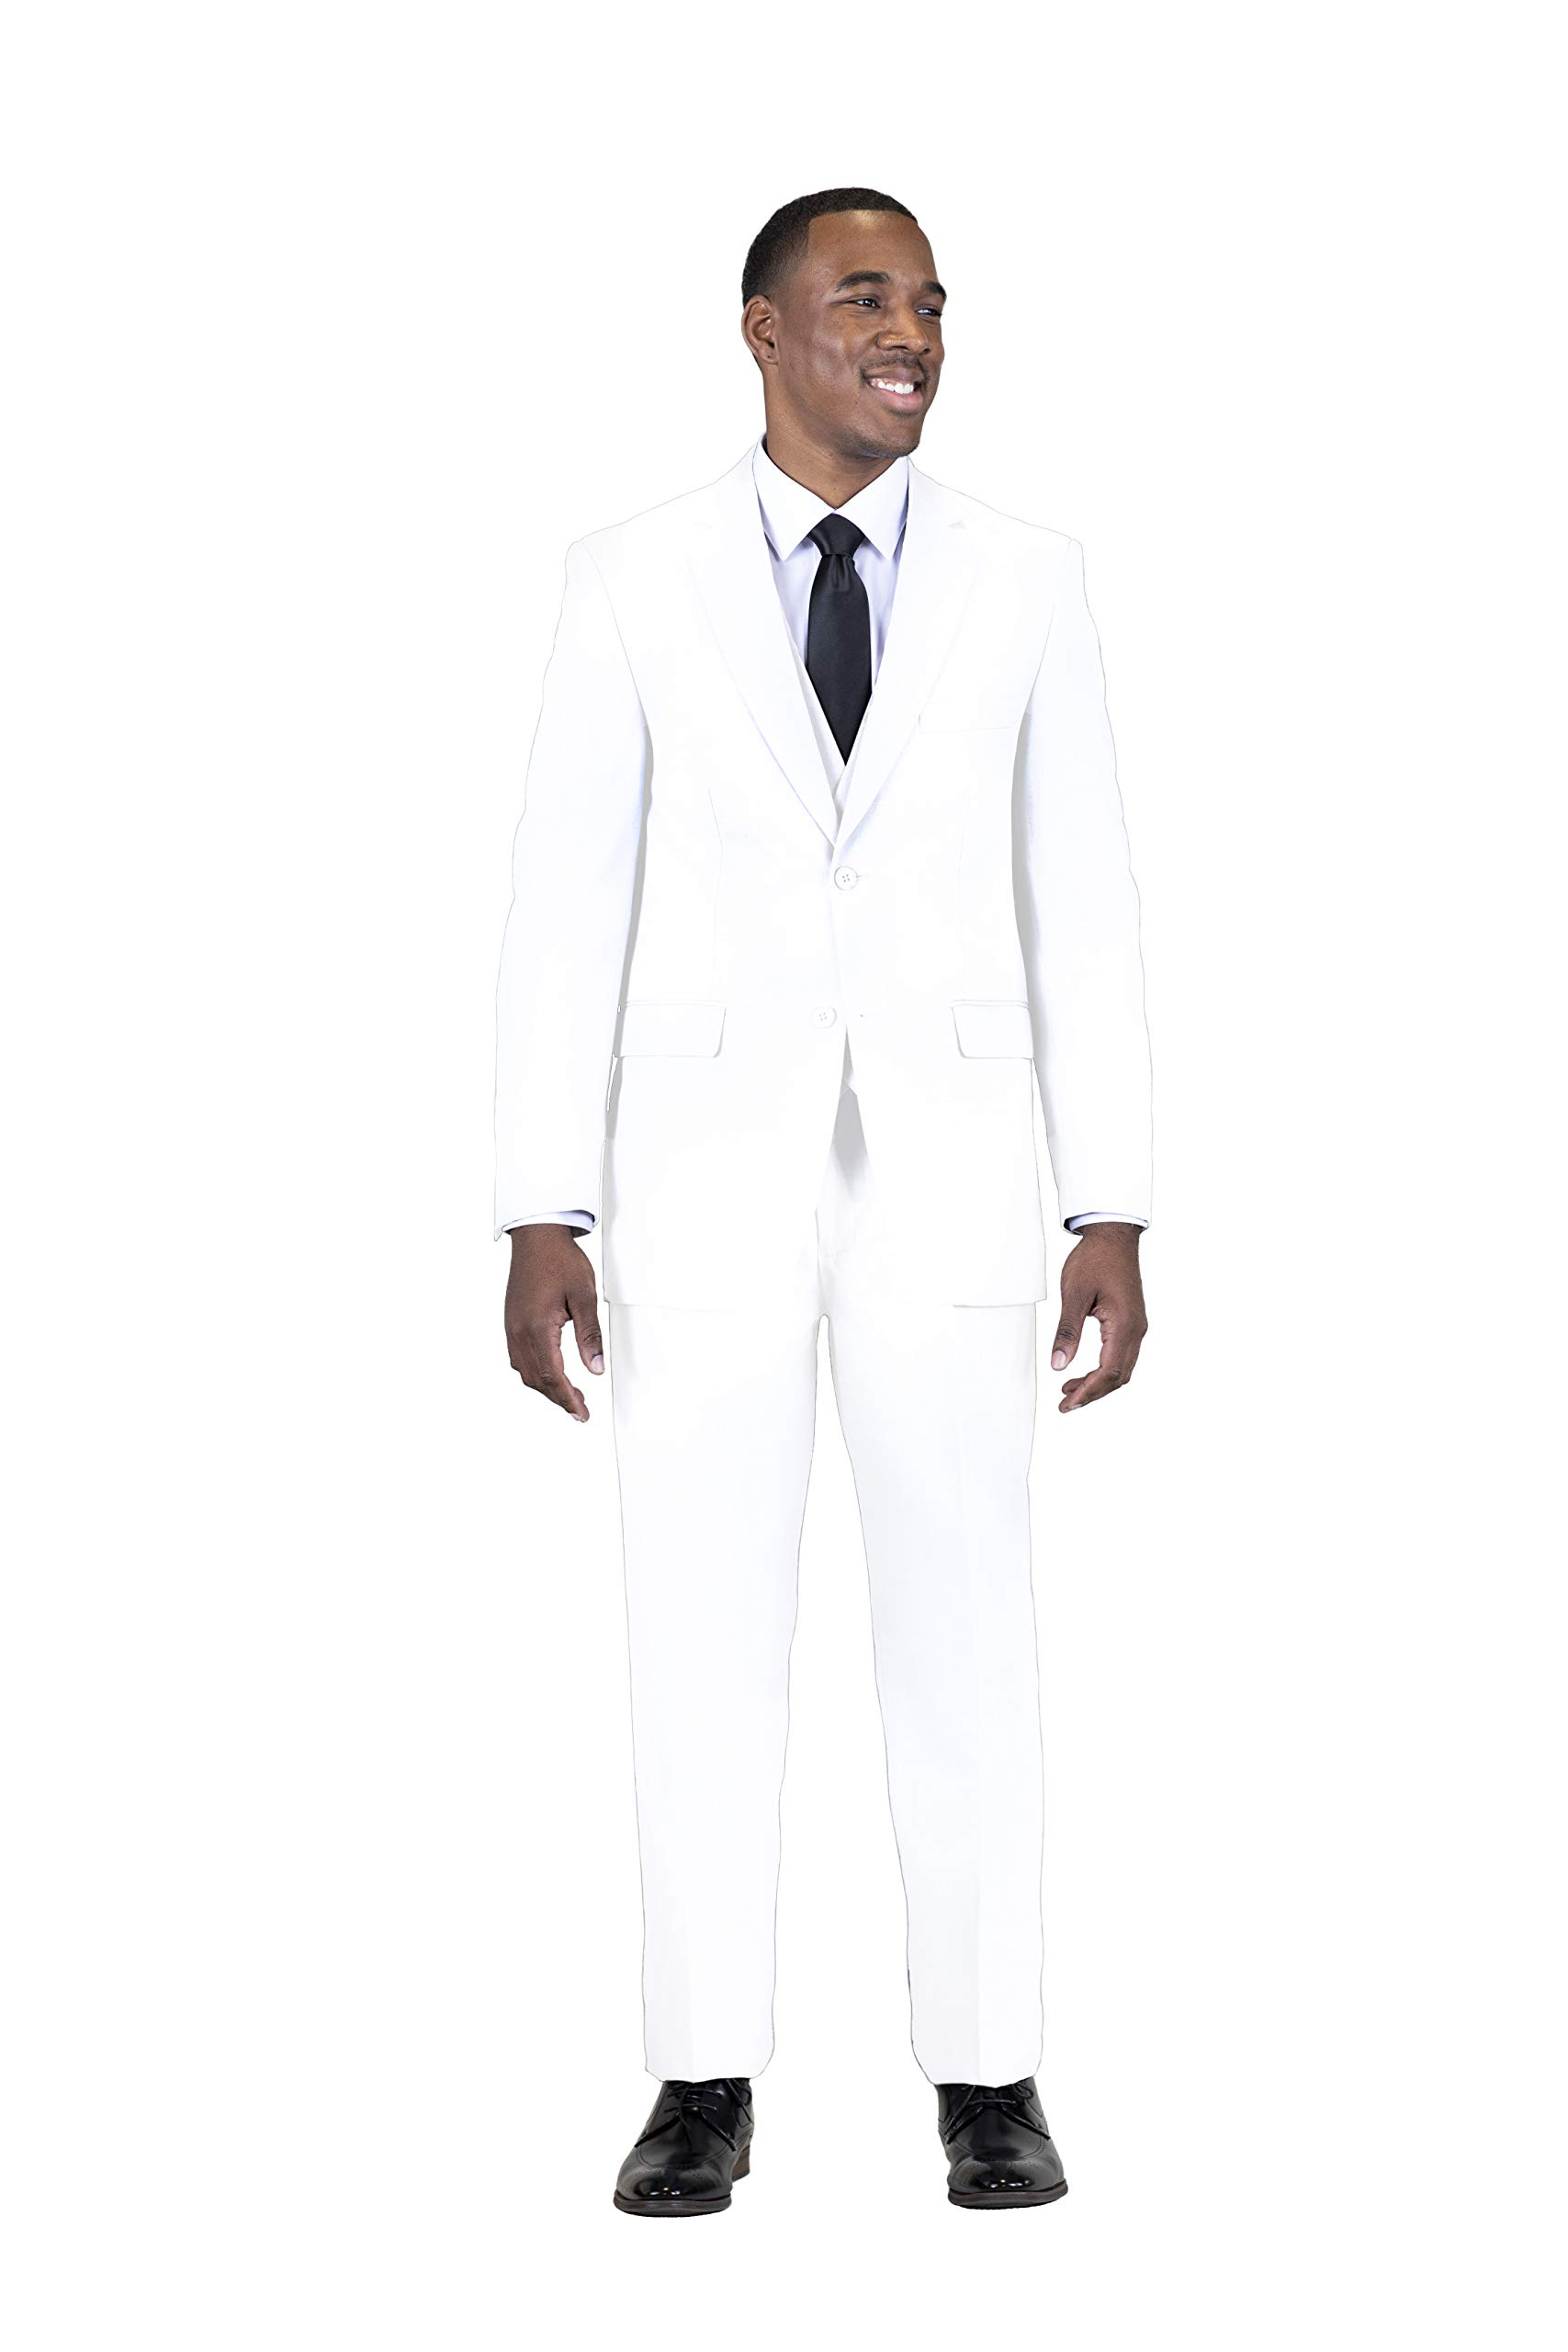 Stacy Adams Men's Big-Tall Suny Vested 3 Piece Suit, White, 54 Long by STACY ADAMS